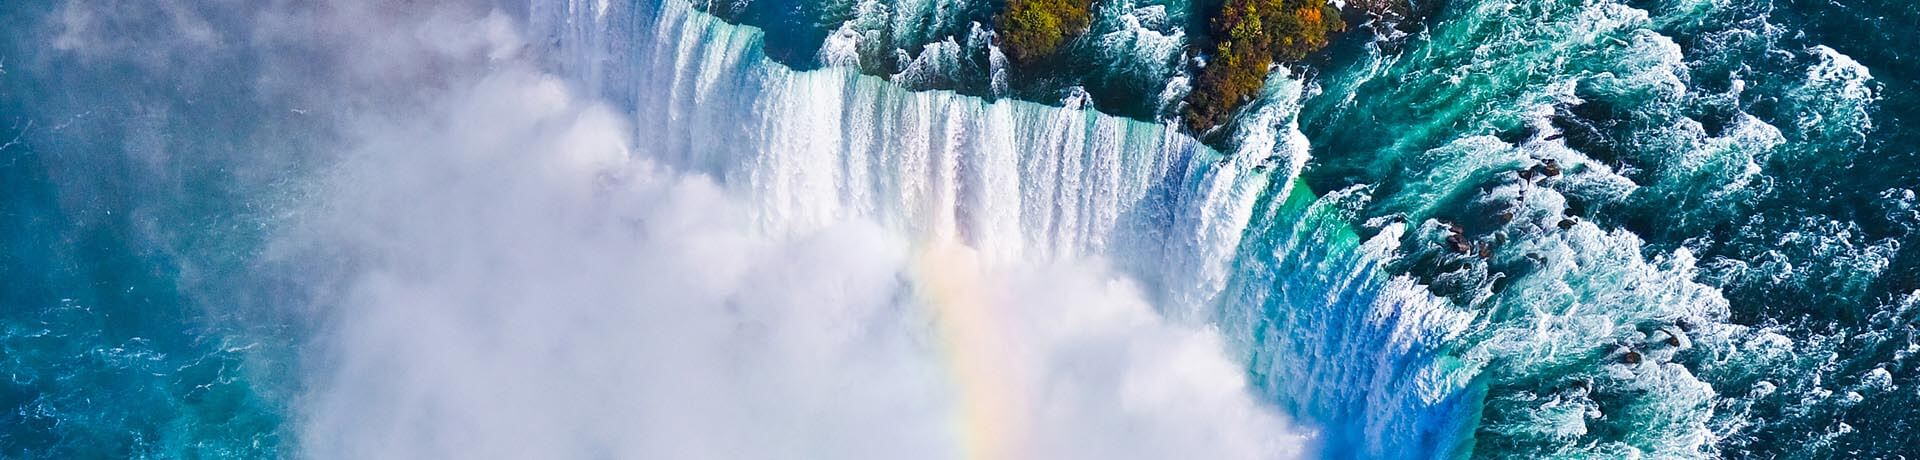 Aerial view of amazing niagara falls, Canada and United States of America